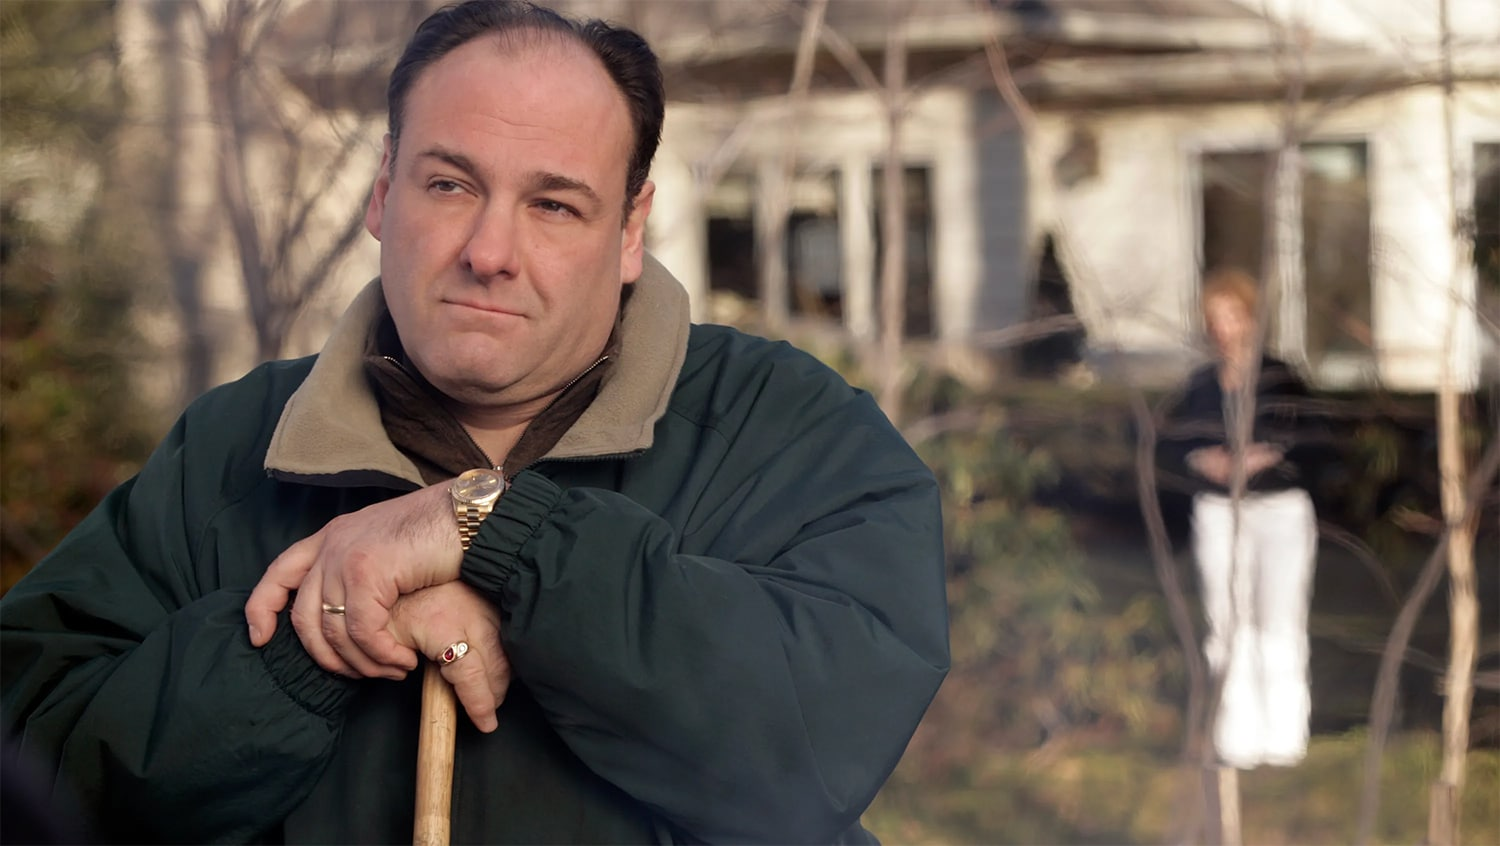 HBO The Sopranos Asked Questions Audiences Are Still Trying to Answer innovative narrative storytelling with lies and uncertain character motivations